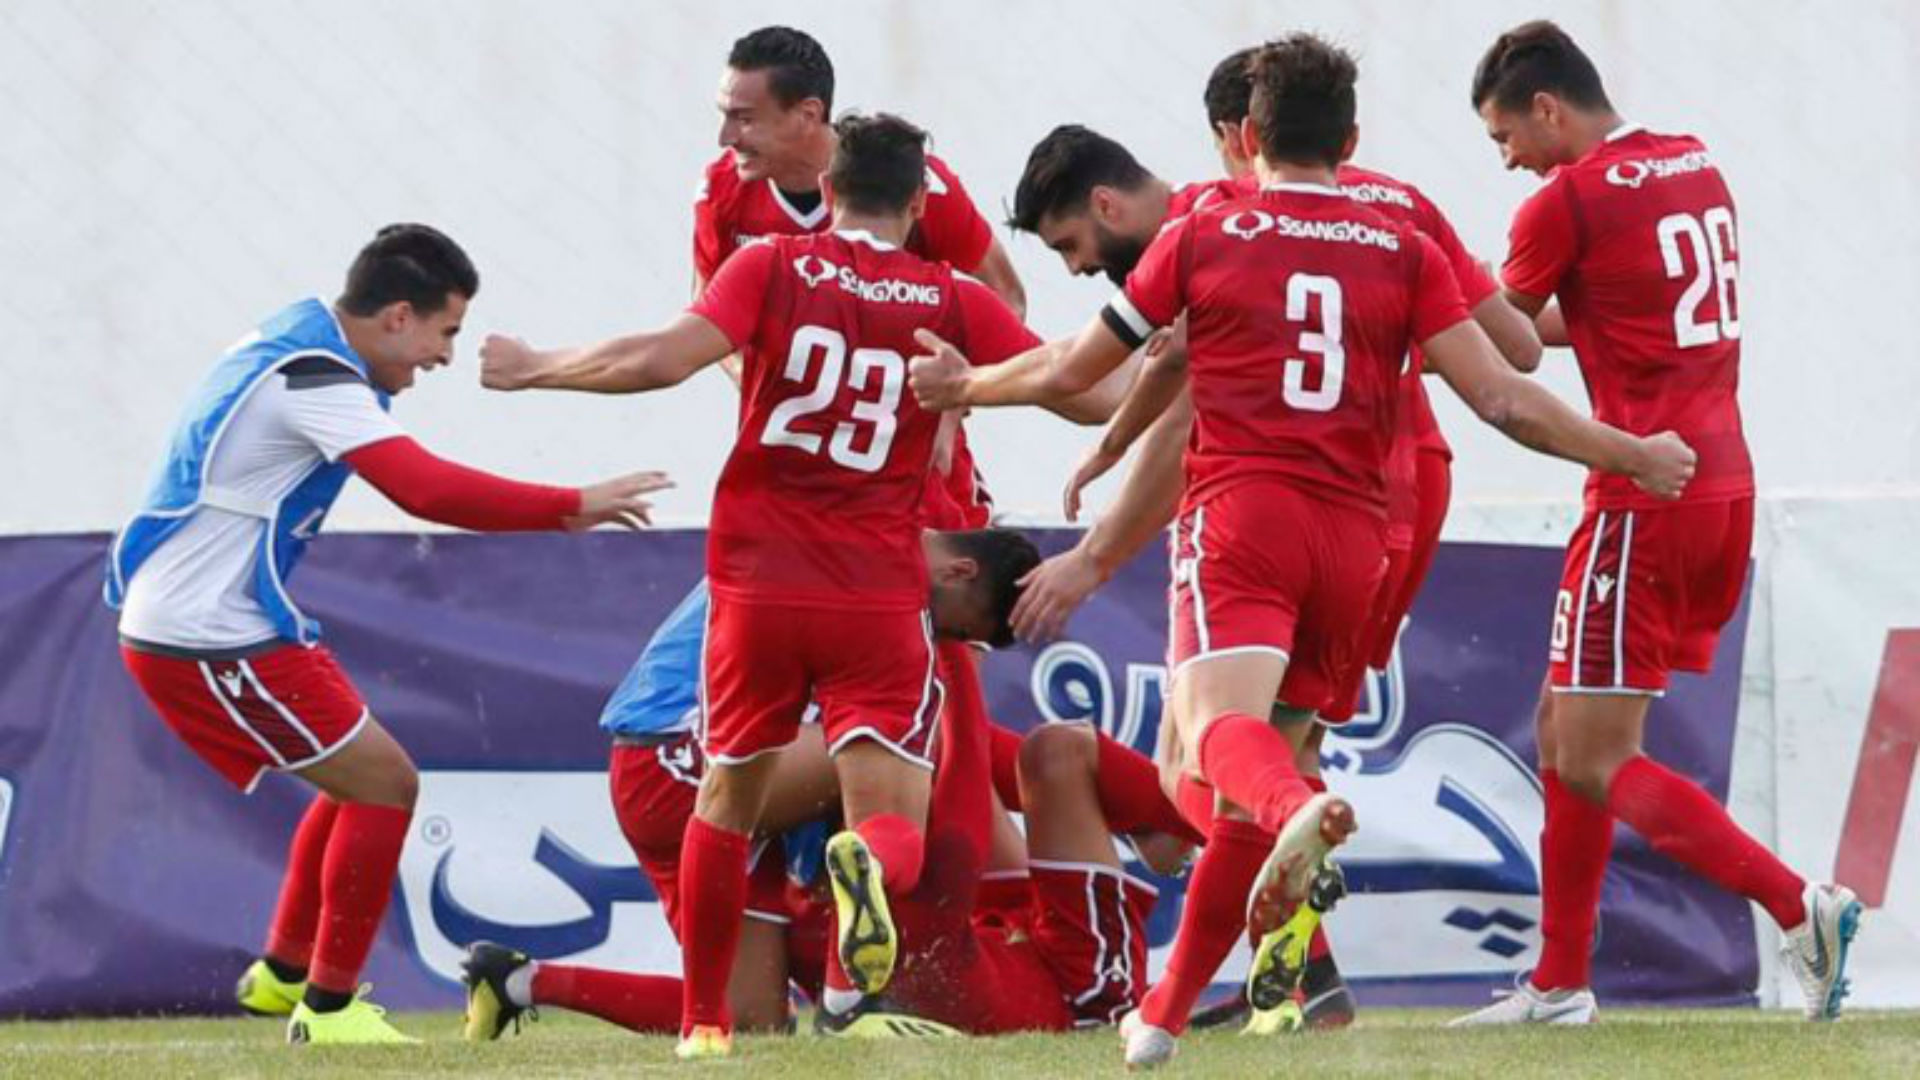 Caf Champions League wrap: Big wins for Etoile du Sahel